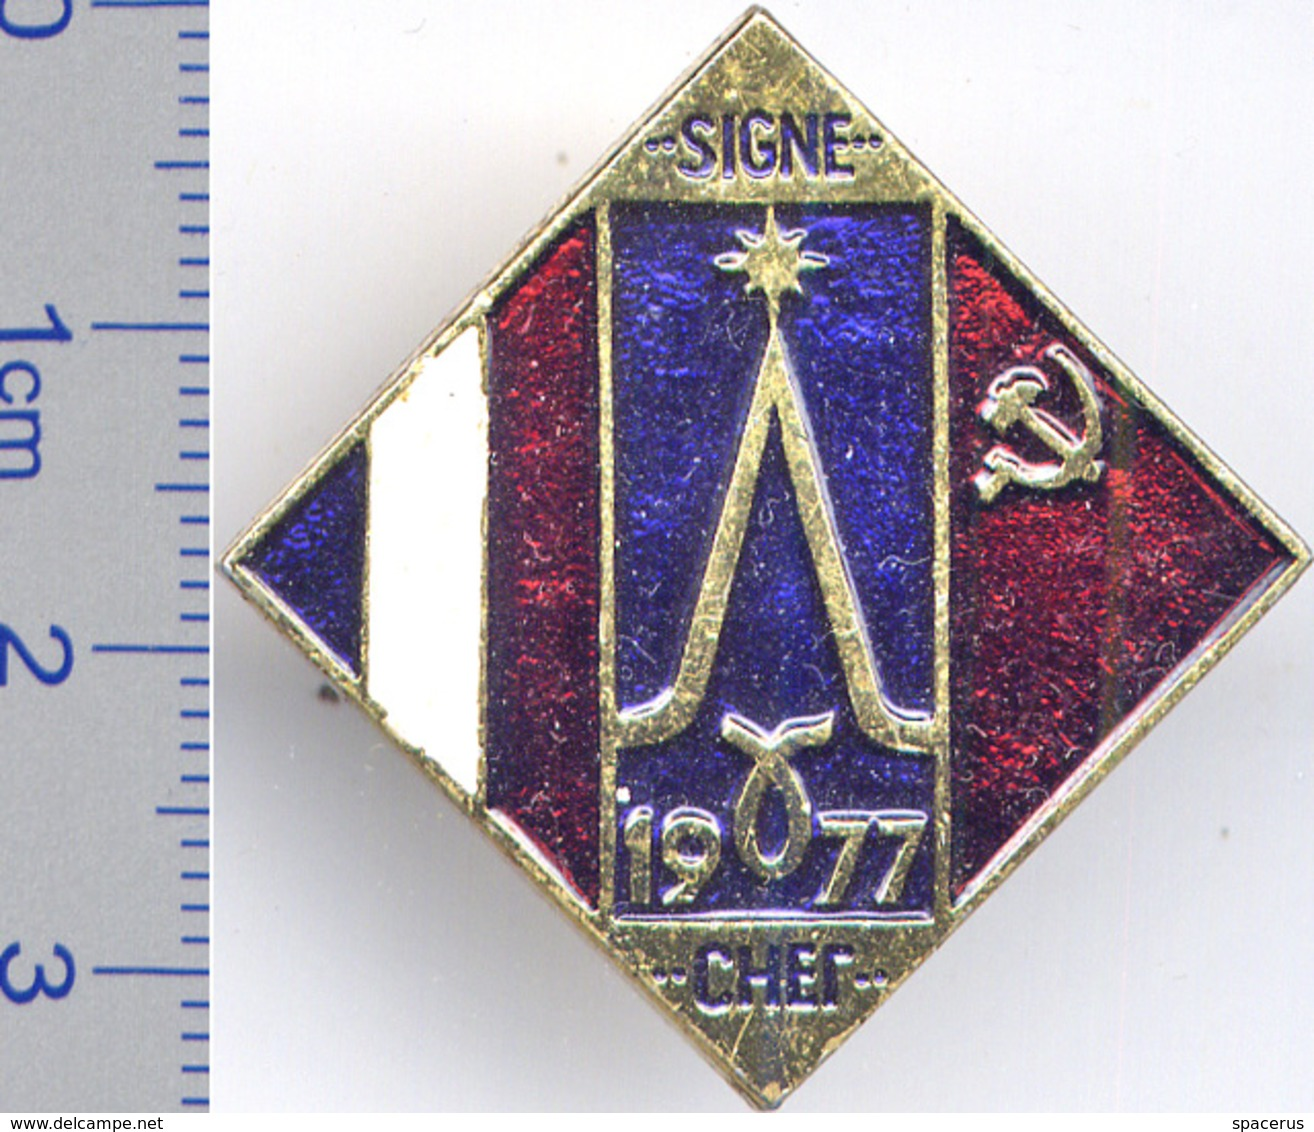 150 Space Soviet Russian Pin. INTERKOSMOS USSR-France. Expirience Signe - Space